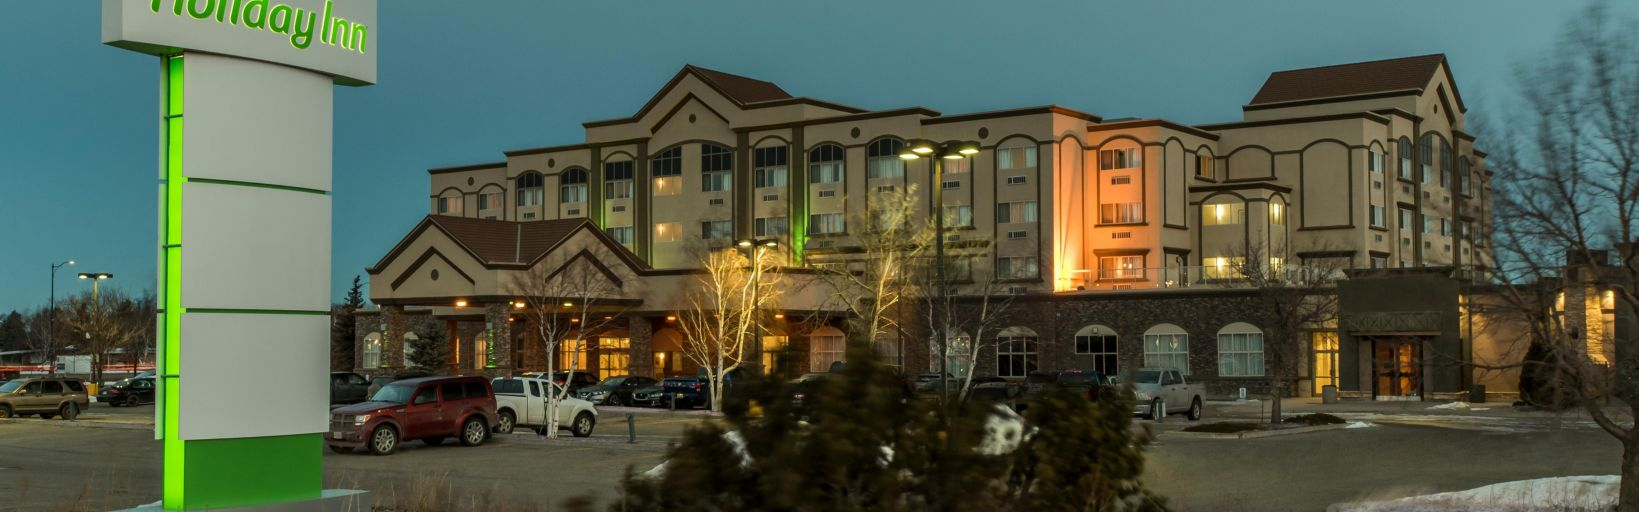 Welcome To Holiday Inn Lethbridge More Than Just A Hotel